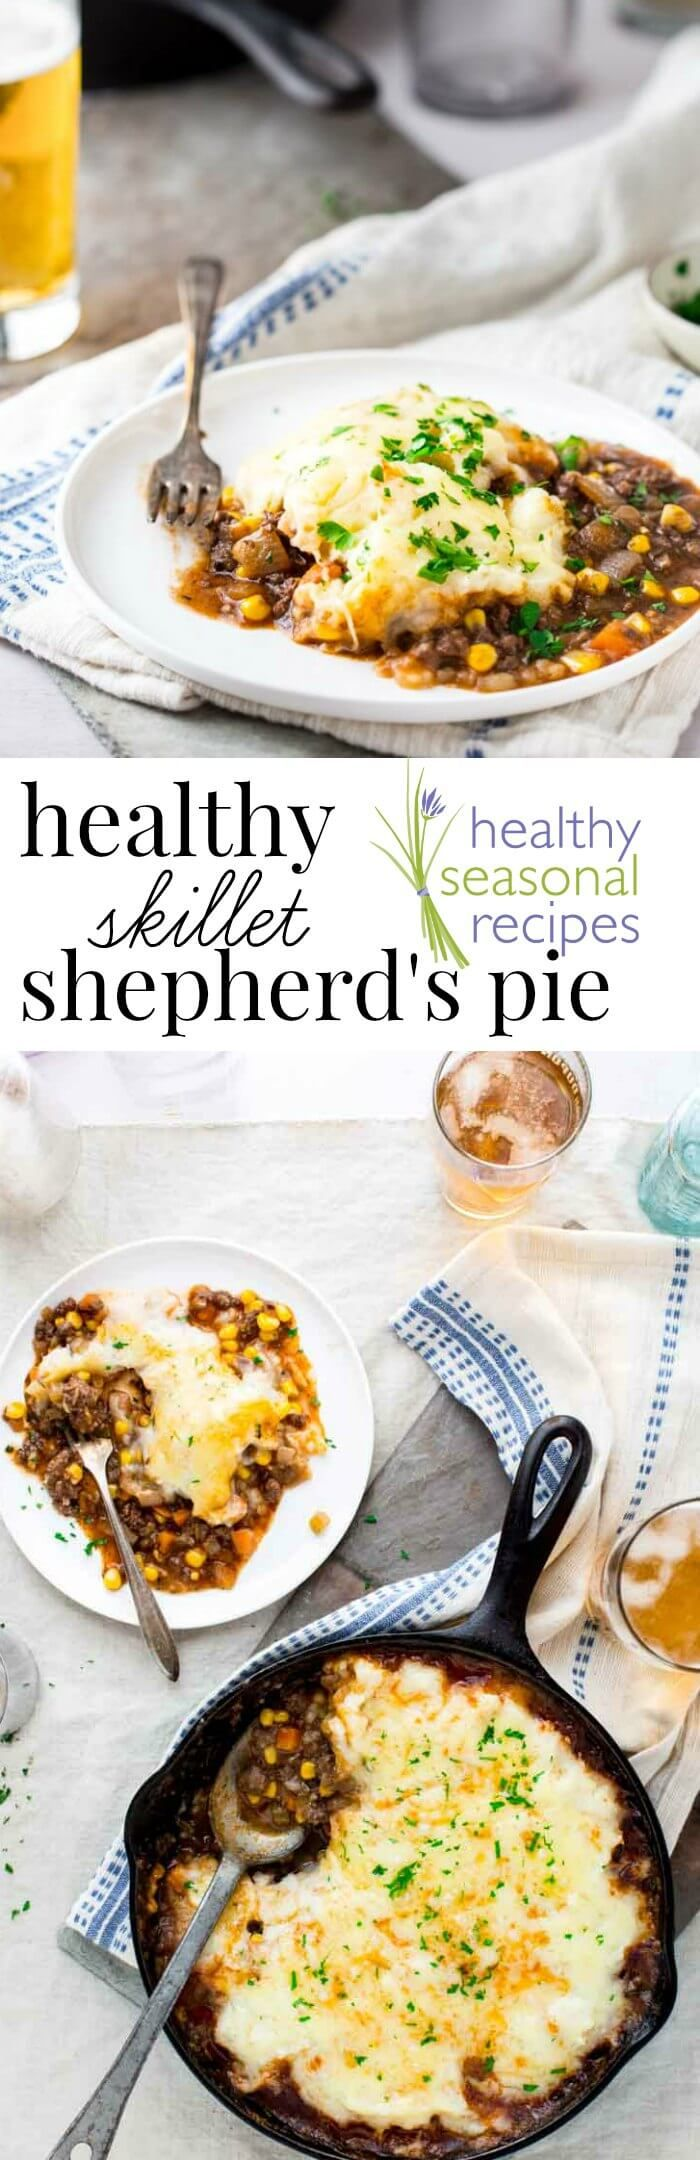 Healthy Skillet Shepherd's Pie! Only 390 calories per serving and gluten-free. On healthy Seasonal Recipes by Katie Webster